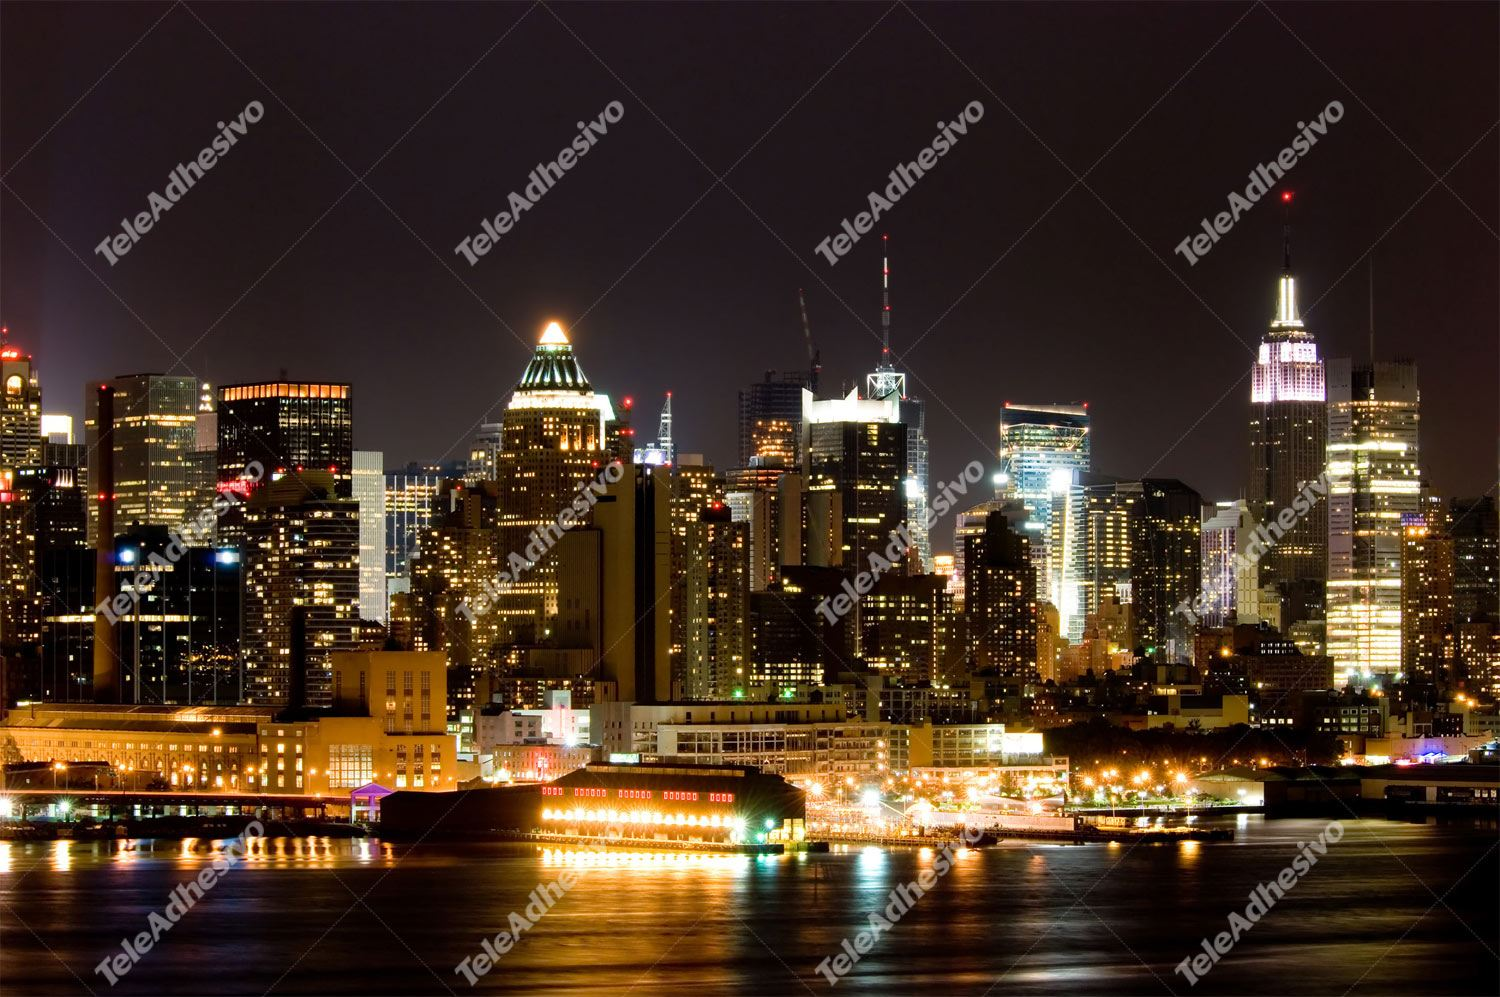 Fototapeten: New York Night I